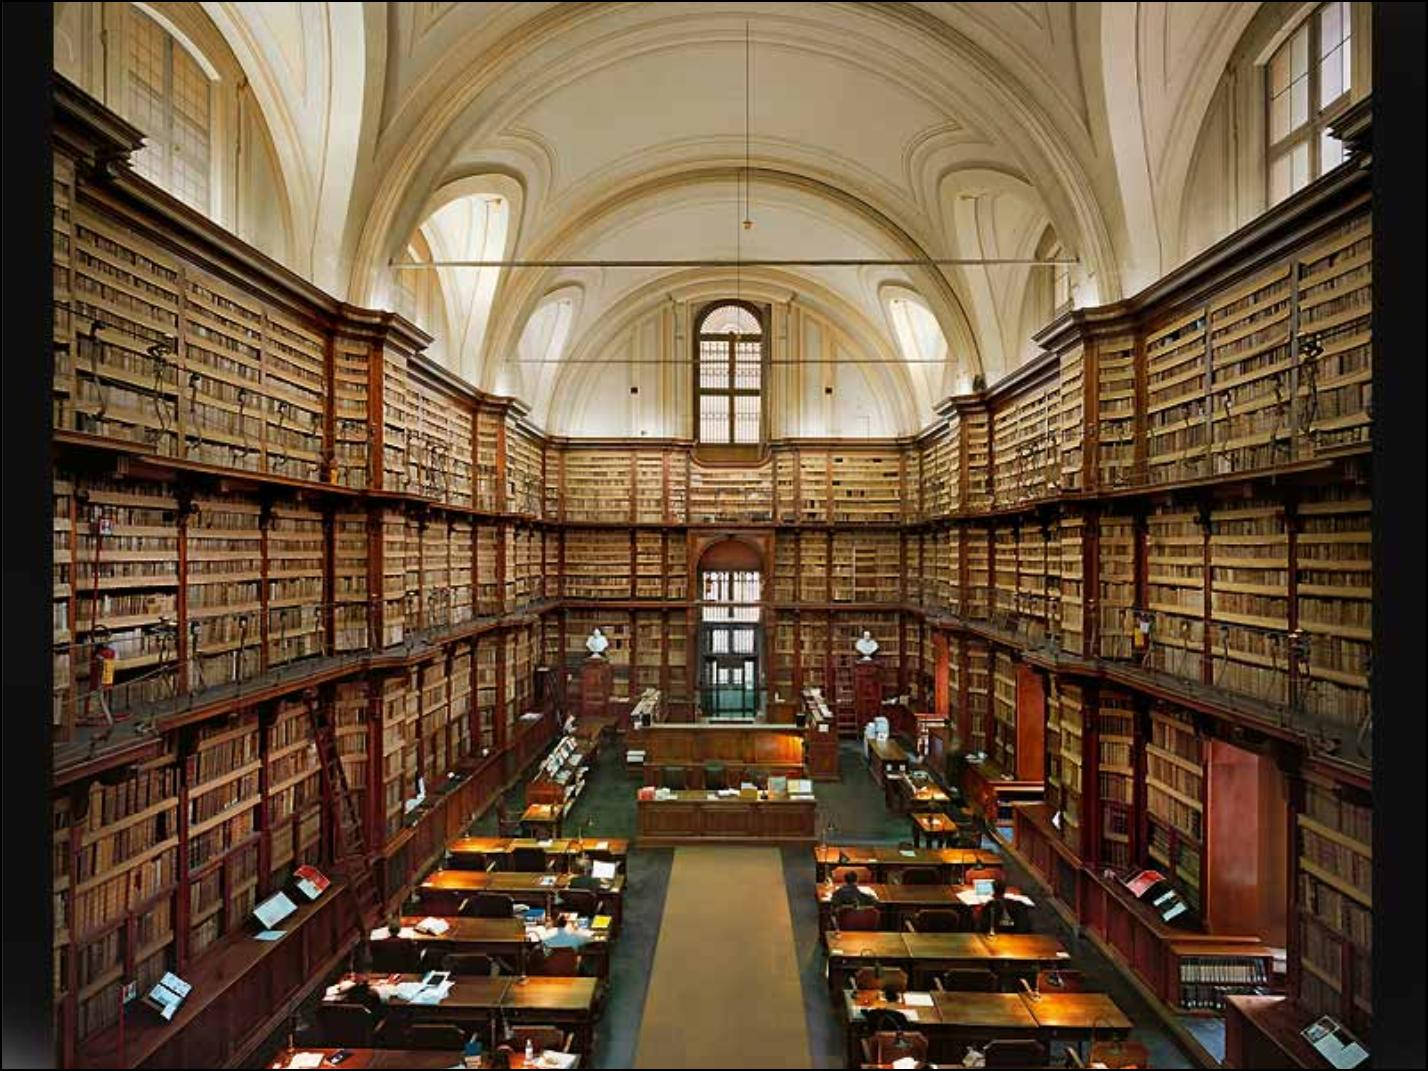 library in Rome Italy